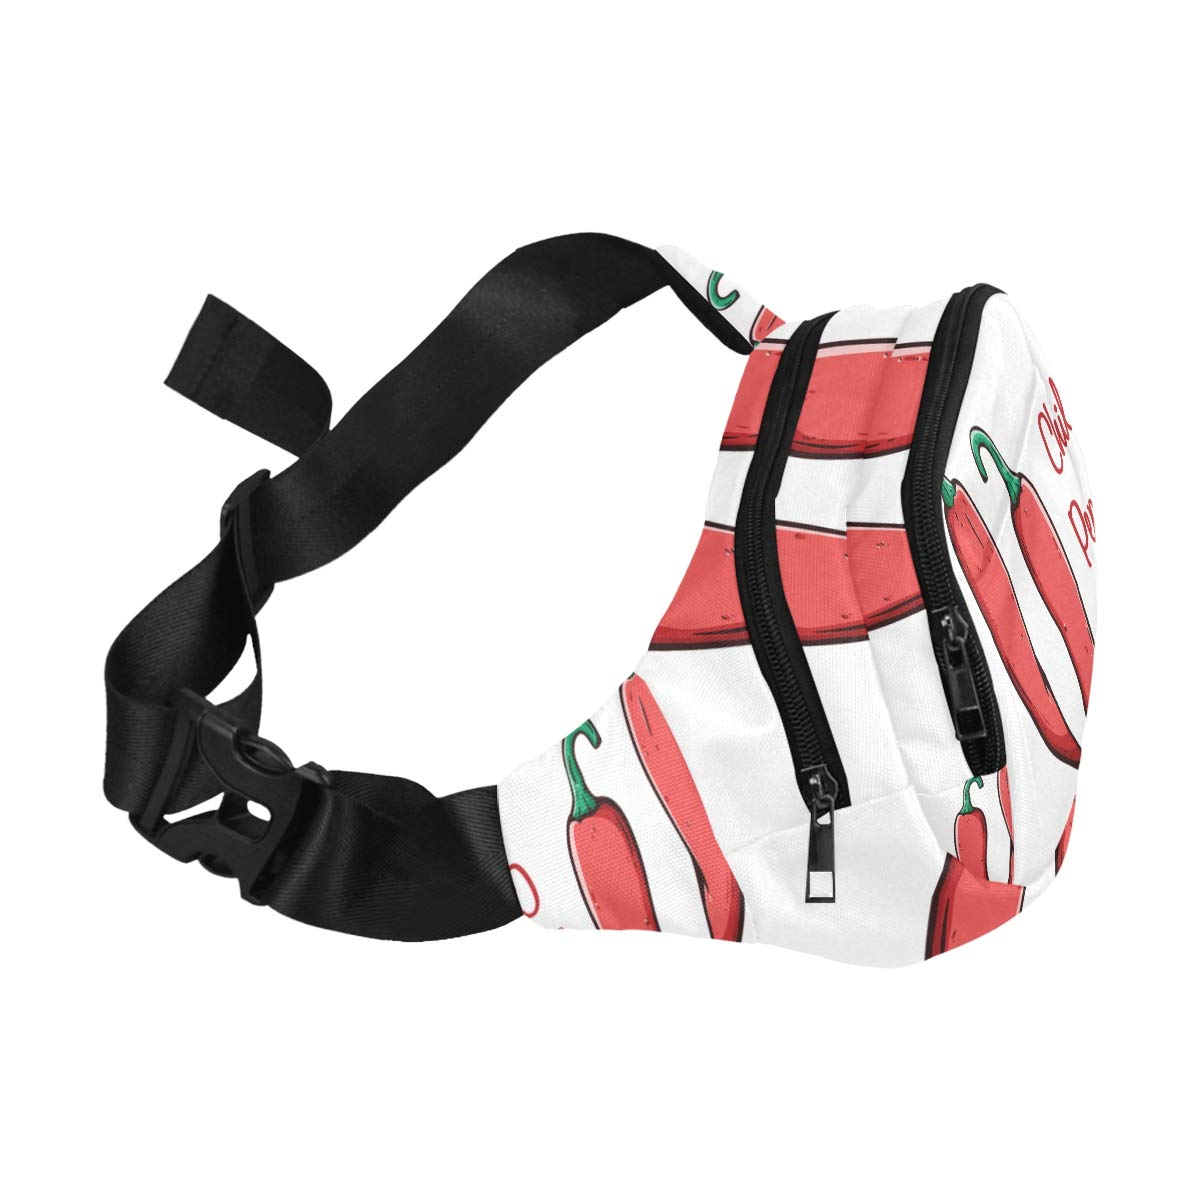 Red Hot Chili Pepper Hand Drawn Fenny Packs Waist Bags Adjustable Belt Waterproof Nylon Travel Running Sport Vacation Party For Men Women Boys Girls Kids